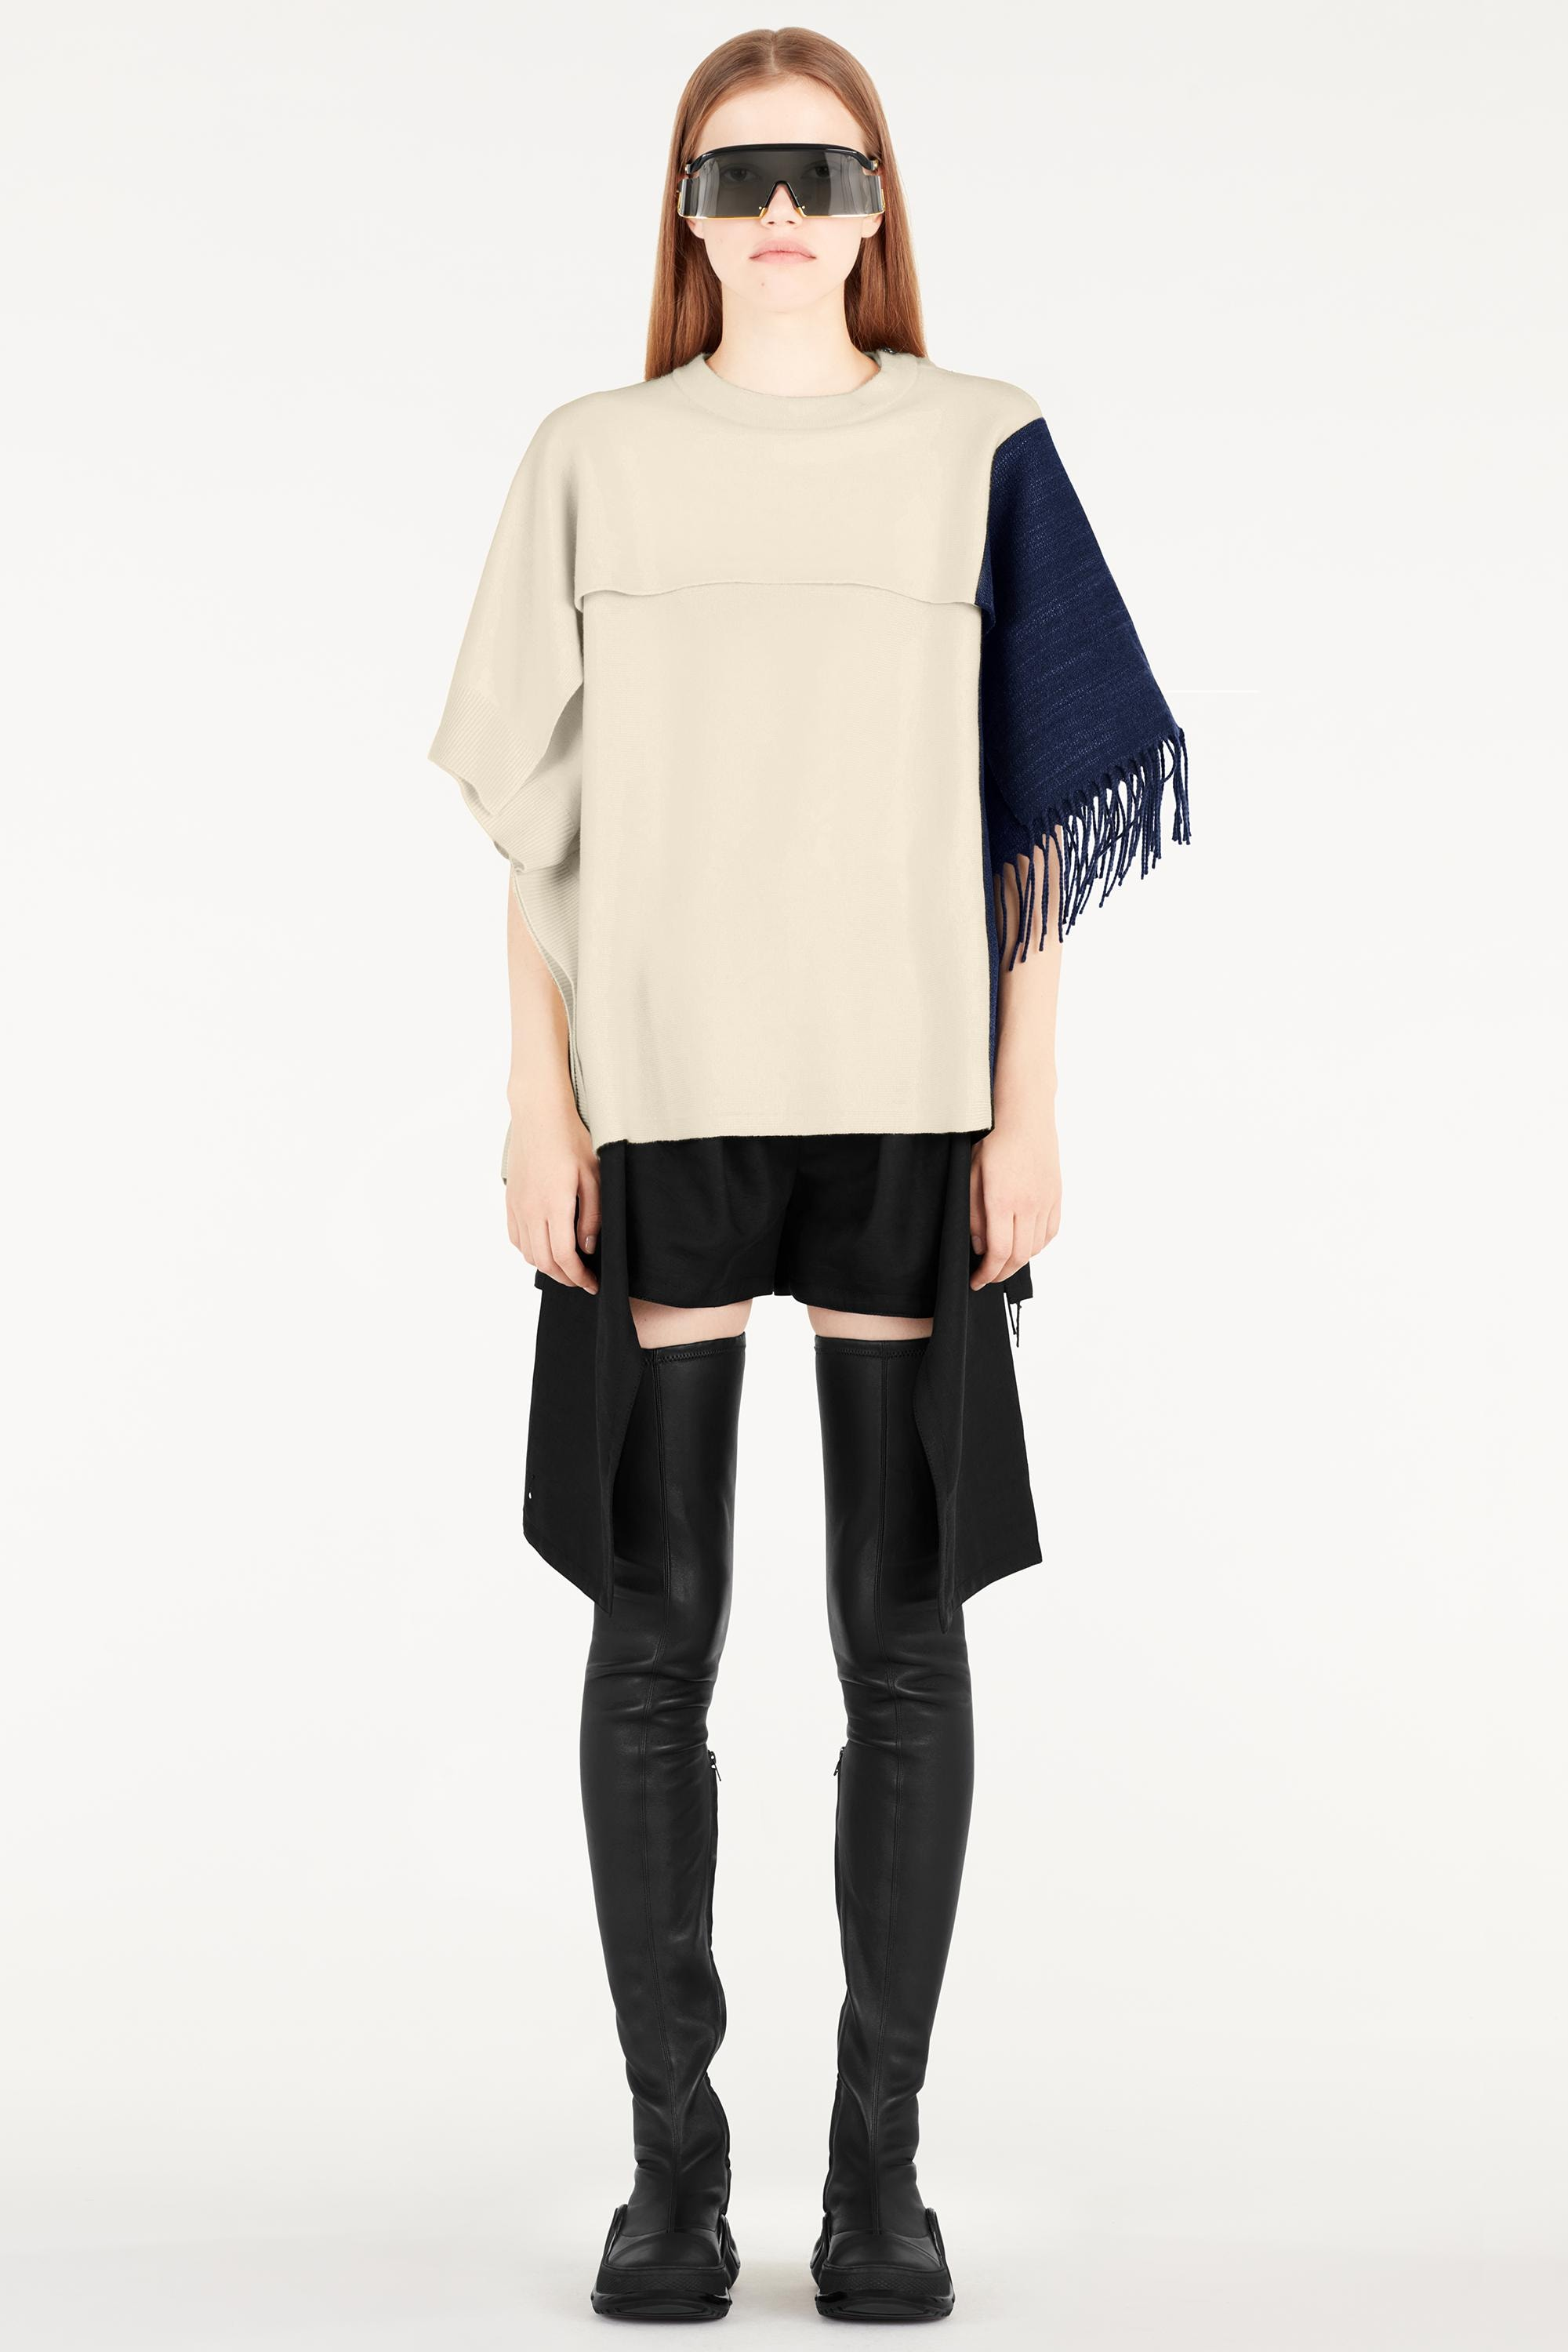 Regenponcho Kopen Knit Poncho With Fringes Ready To Wear Louis Vuitton